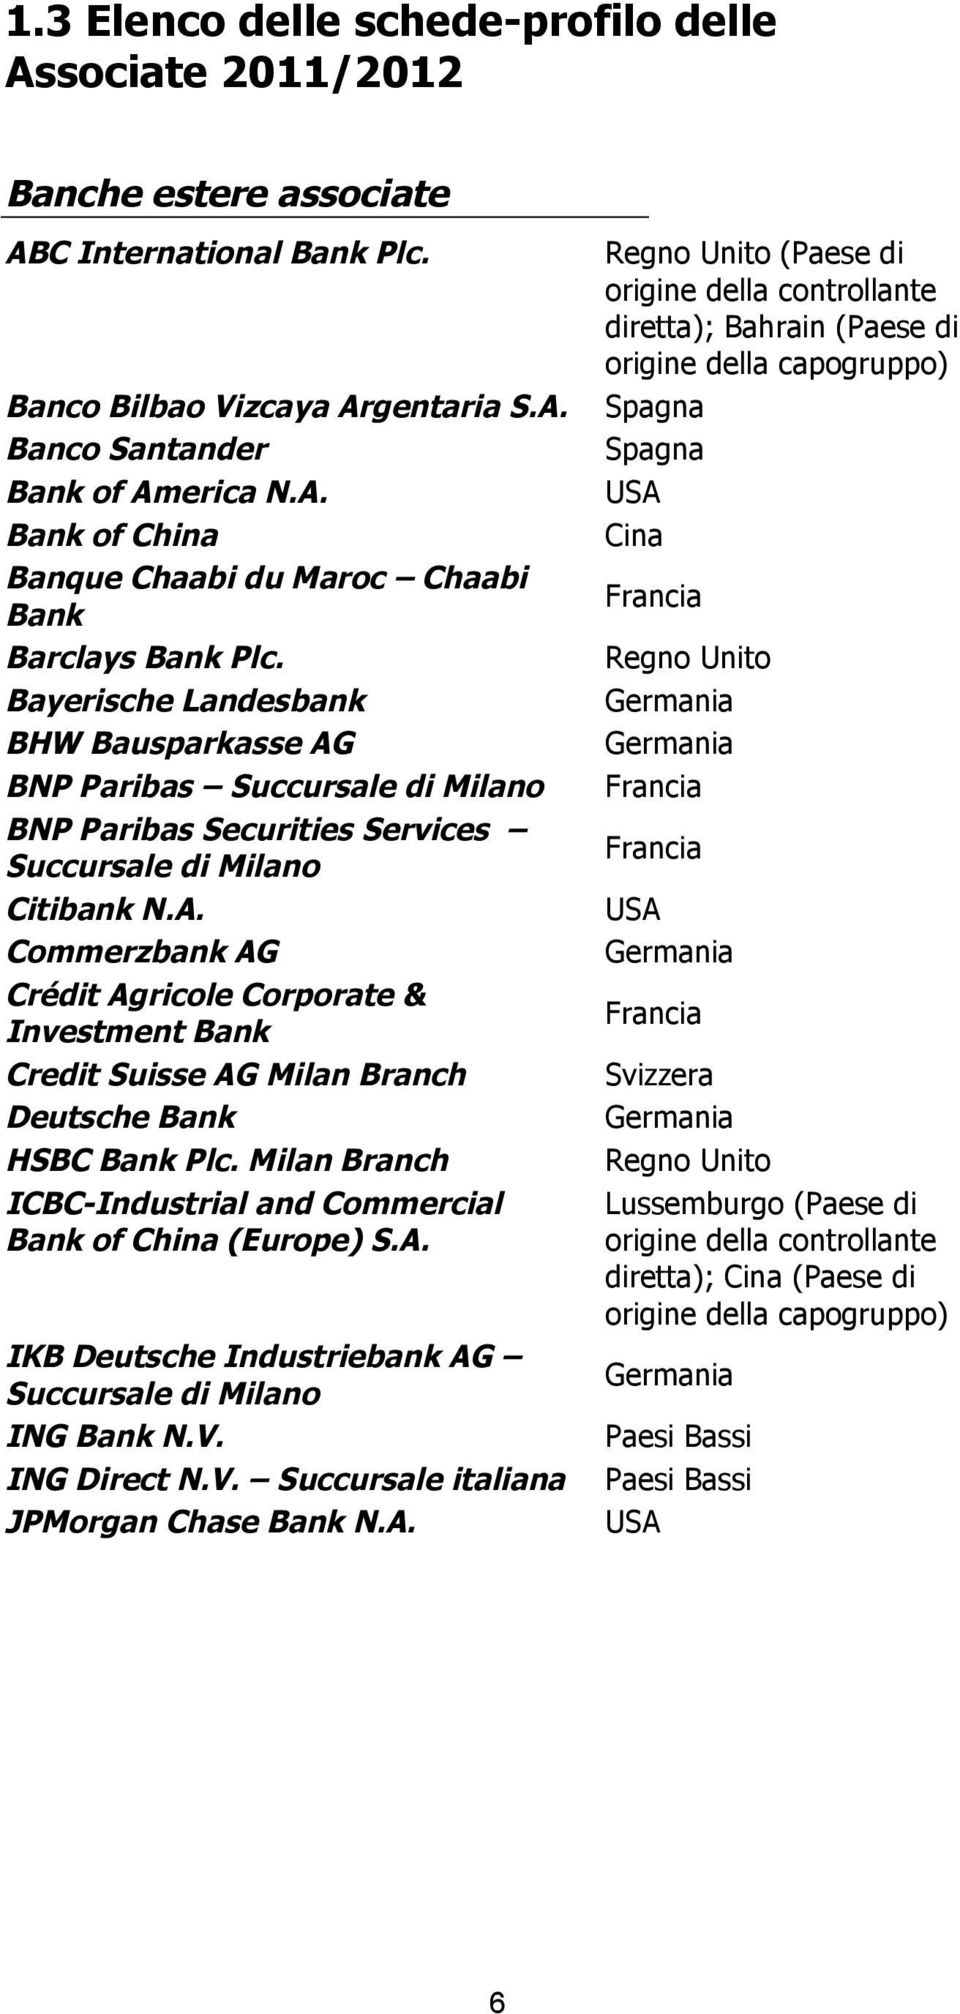 Milan Branch ICBC-Industrial and Commercial Bank of China (Europe) S.A.